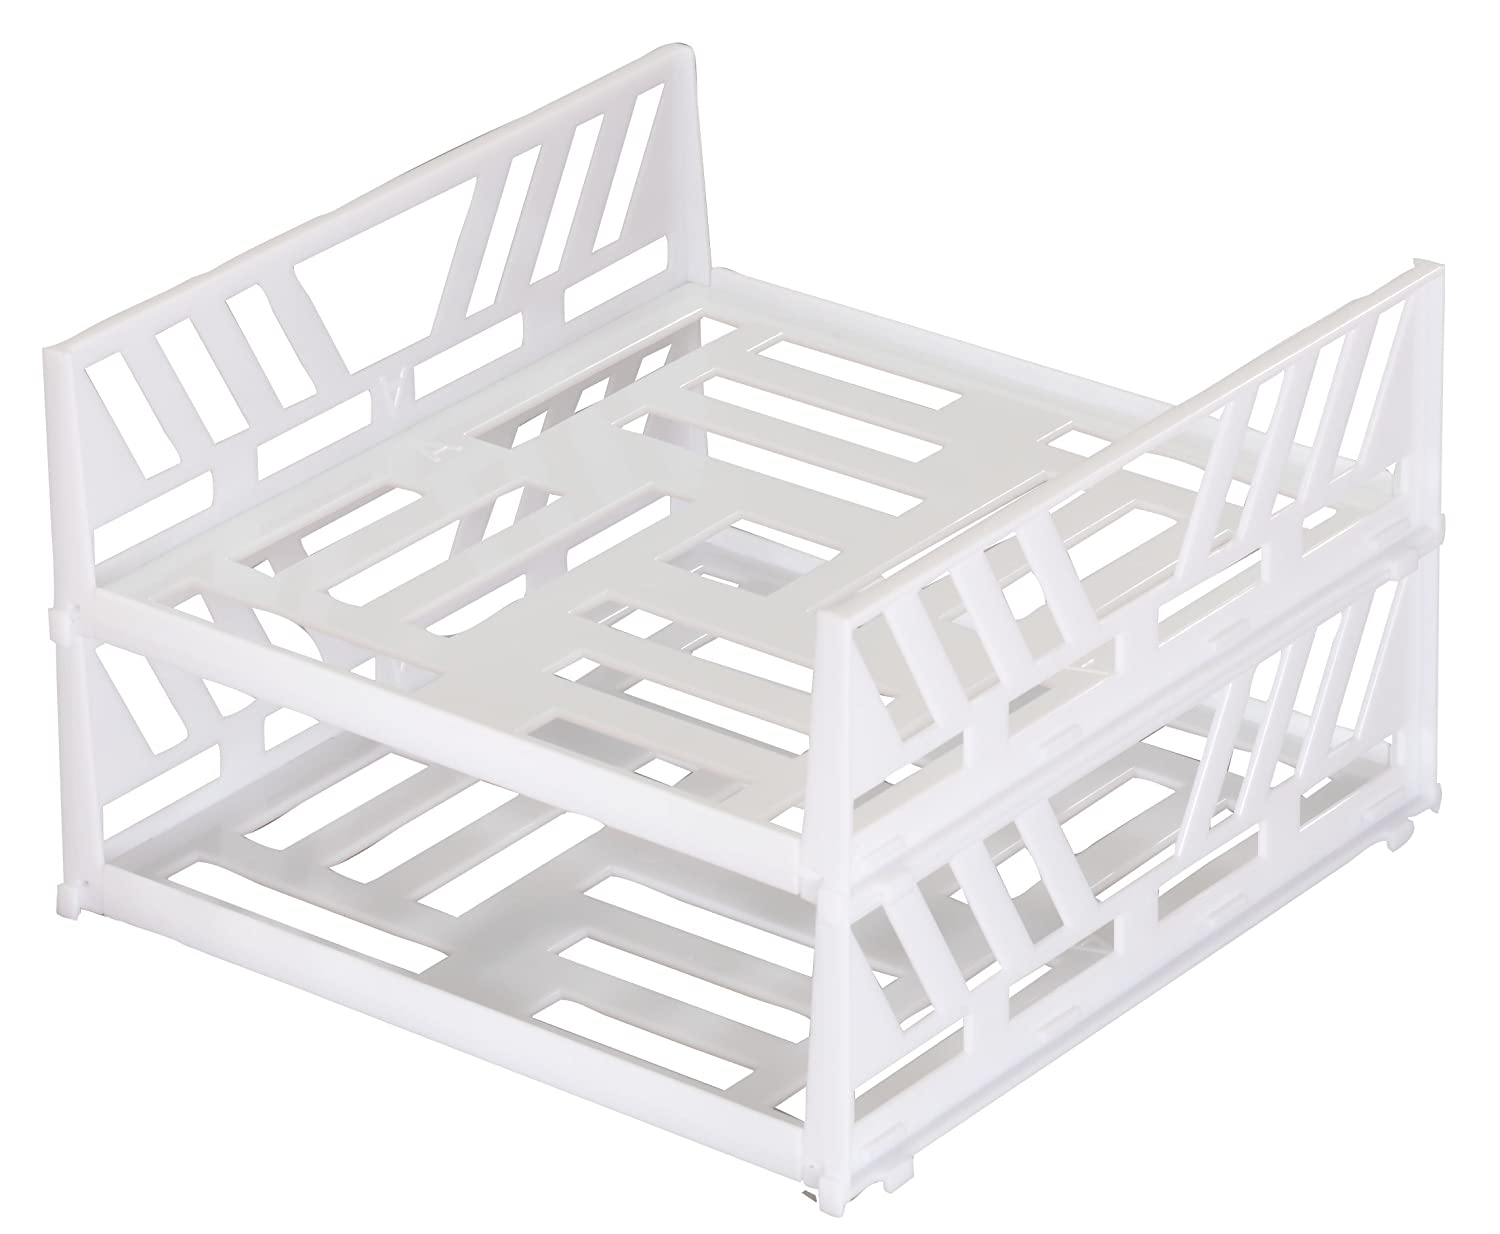 Awesome Stackable Freezer Shelves Set Of 2 By Jumbl Amazon Ca Interior Design Ideas Gentotryabchikinfo